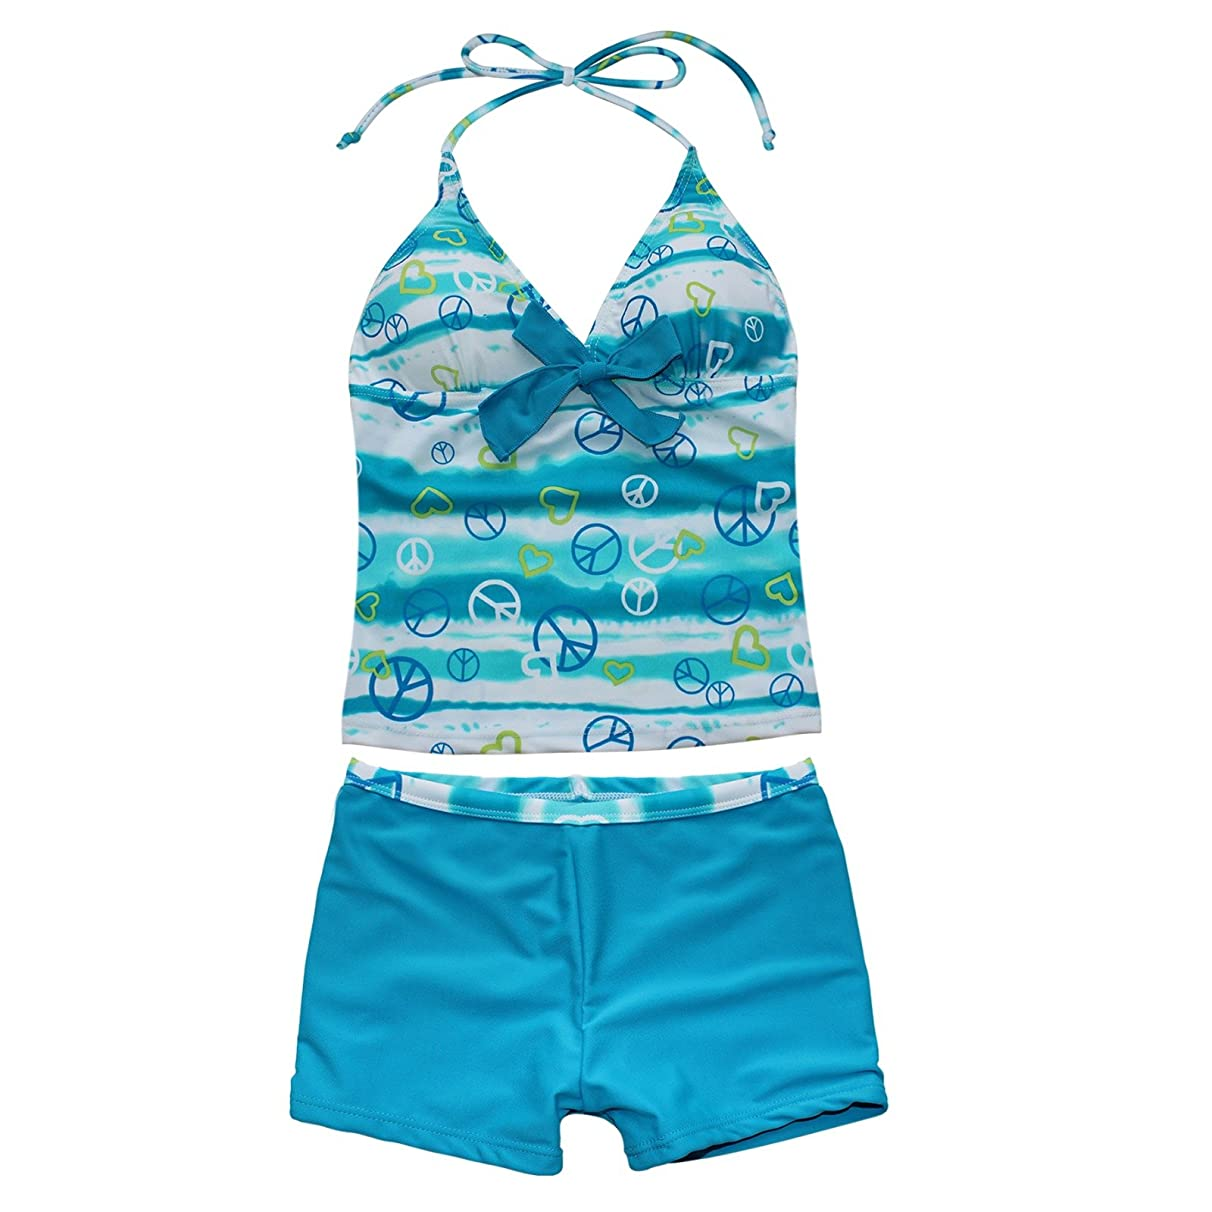 TiaoBug Girls Two-Piece Halter Tankini Swimsuit Bathers Swimmers Summer Beach Water Sports Separates Bathing Suit